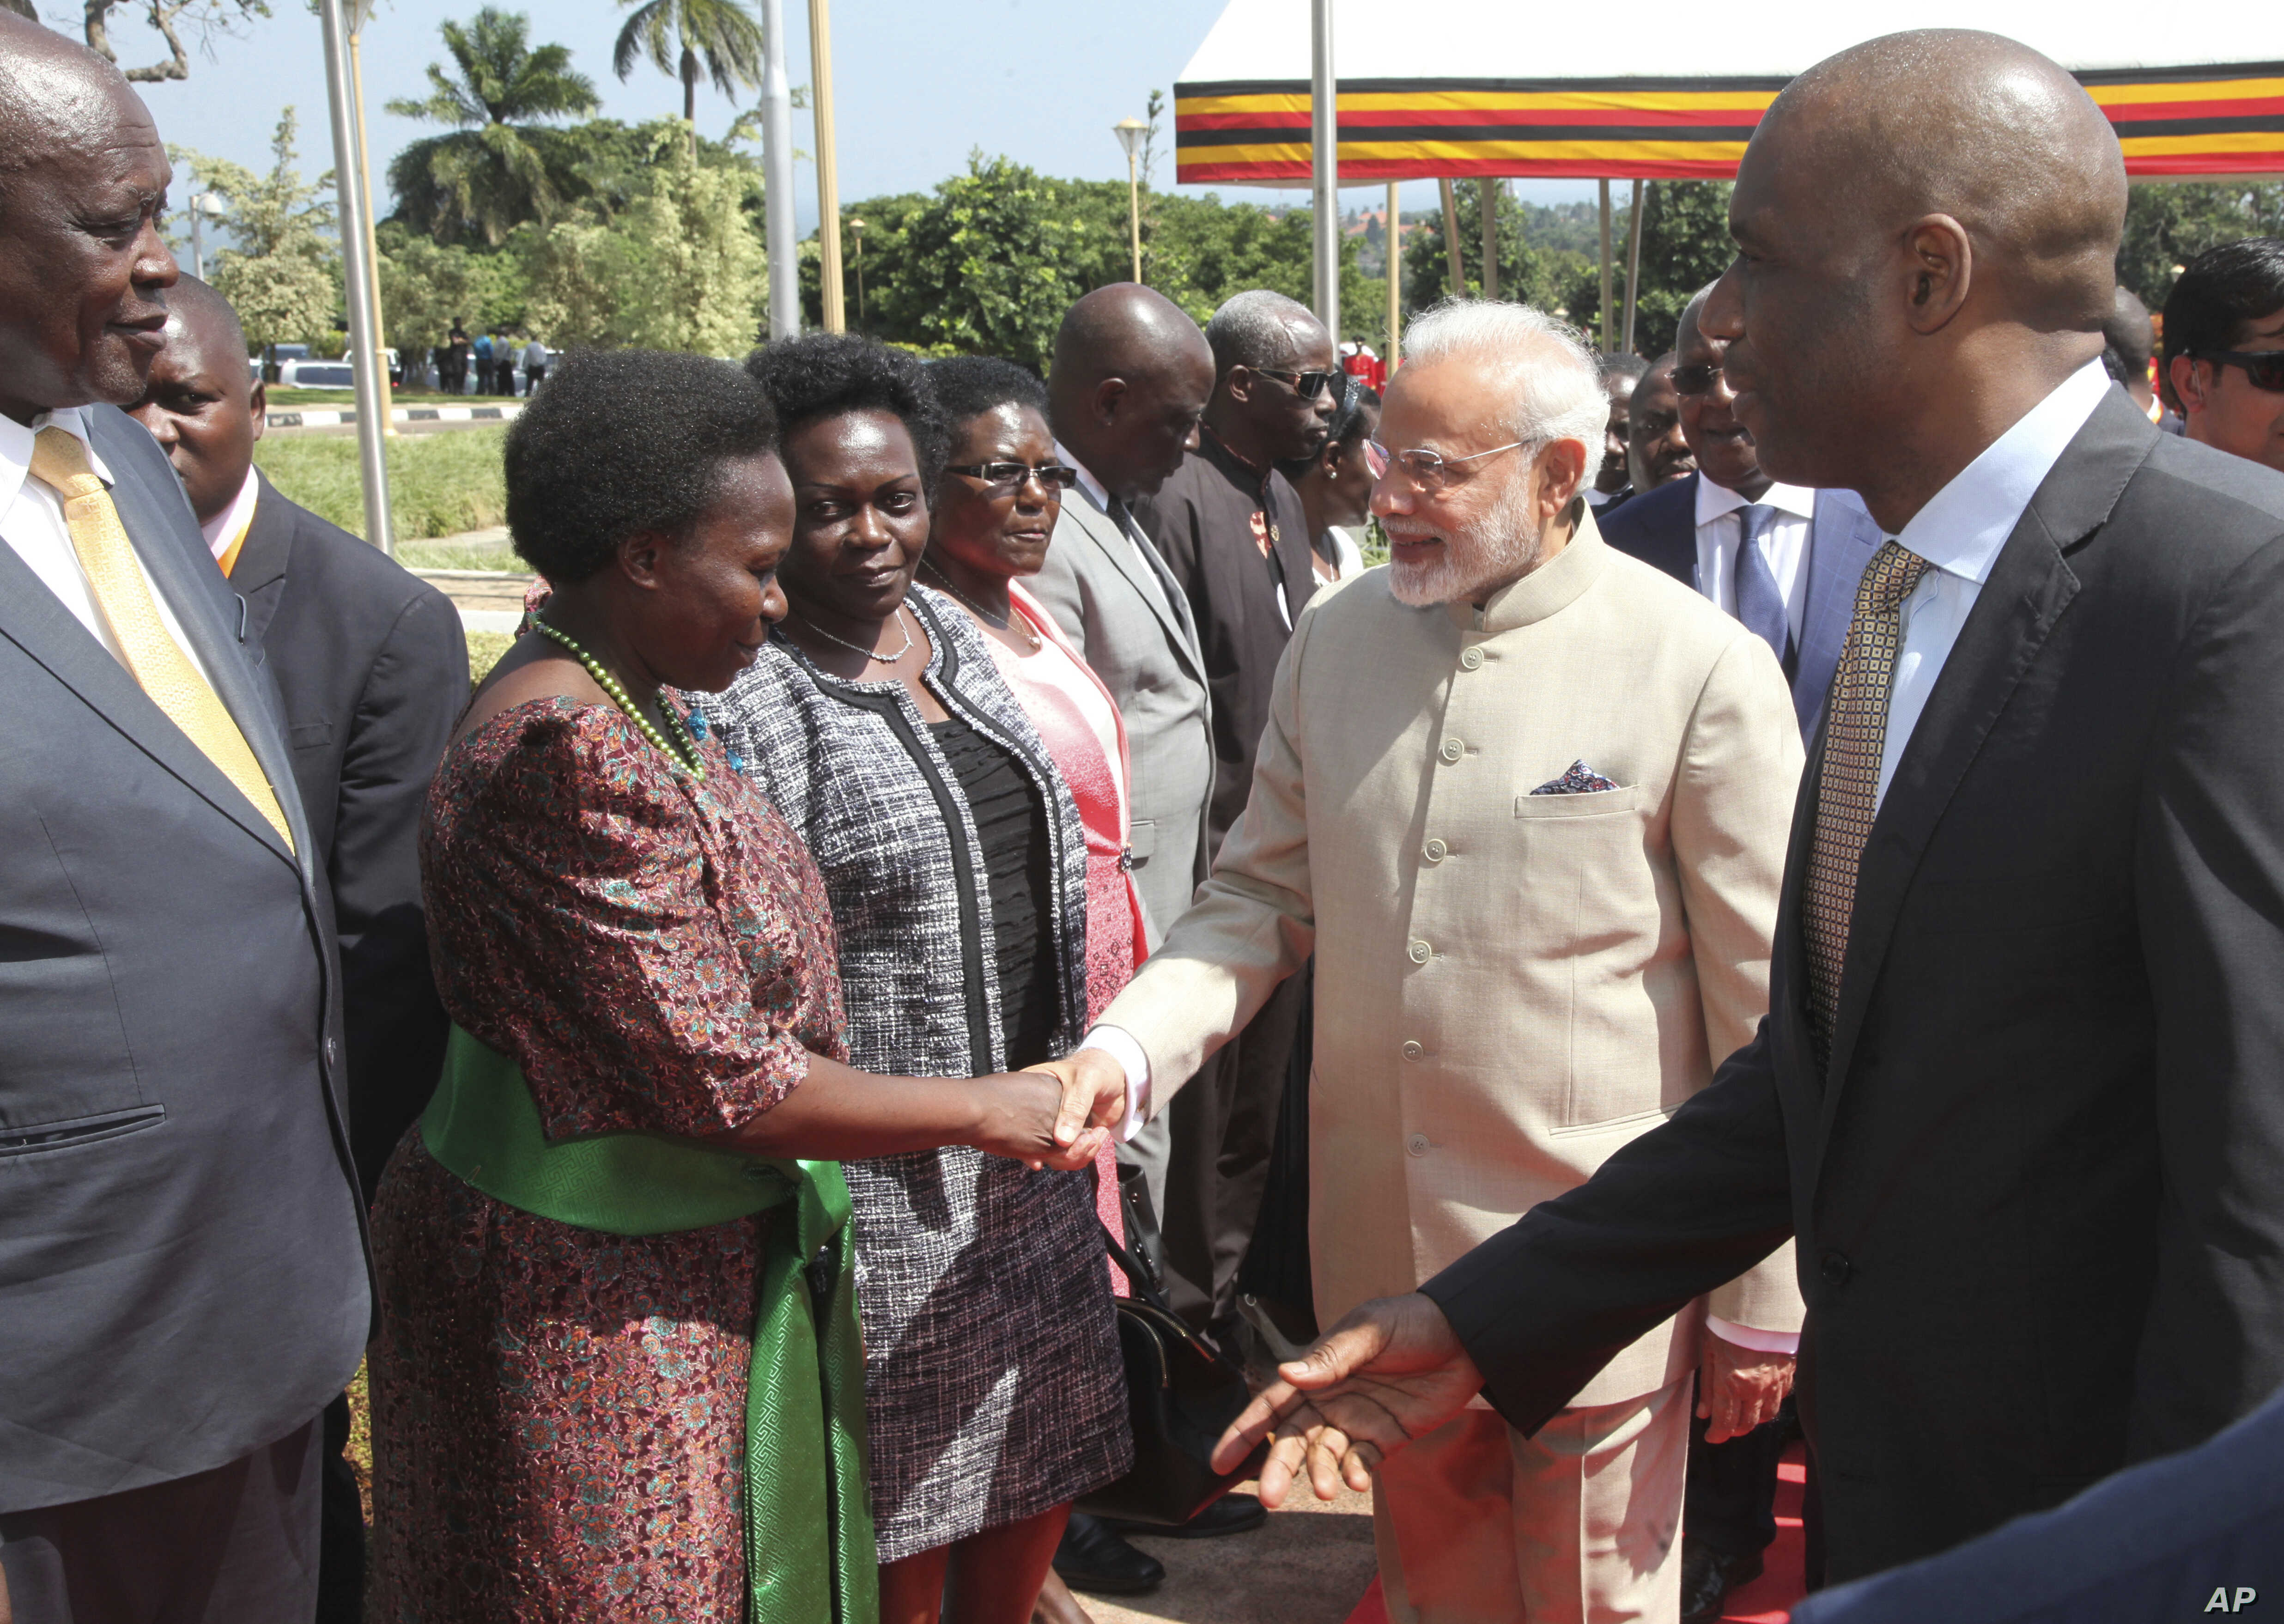 Indian Prime Minister Narendra Modi, centre, is received by Ugandan ministers and dignitaries at State House in Entebbe, about 42 Km from the capital Kampala, July 24, 2018.